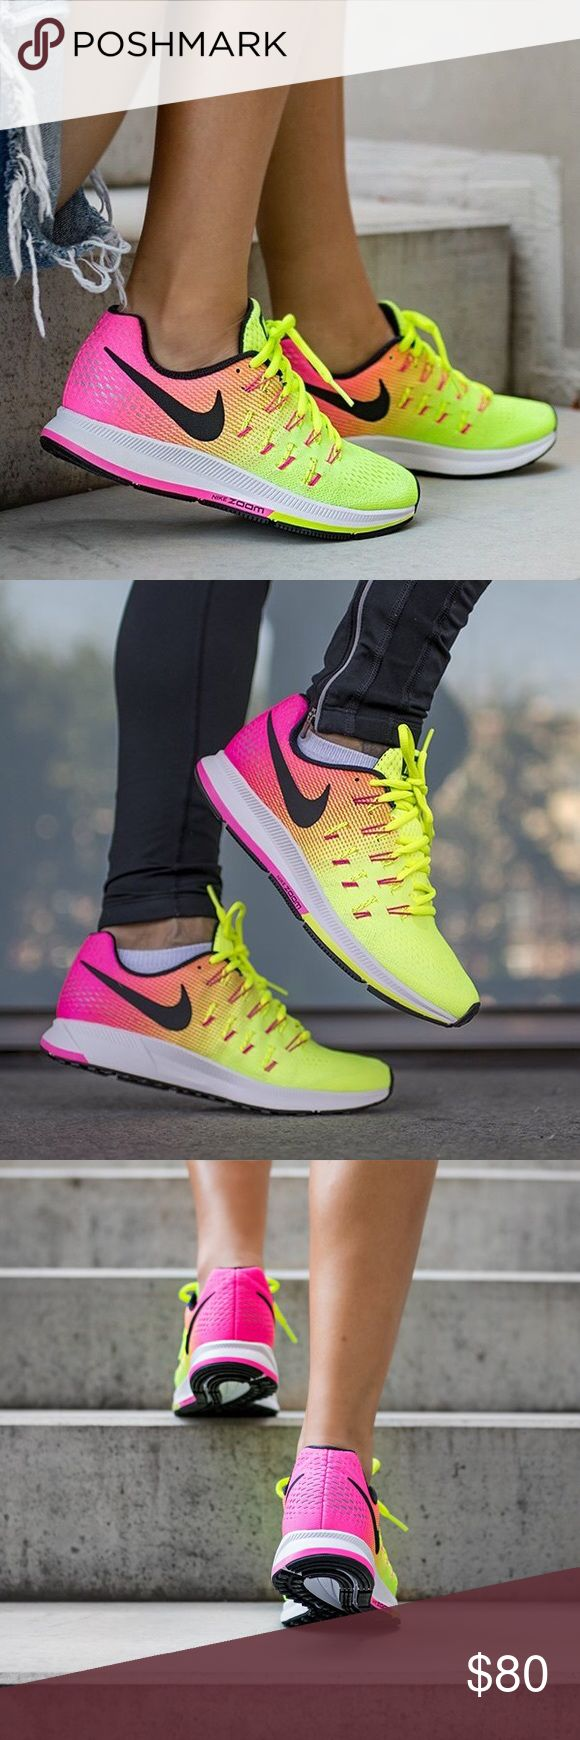 Nike Zoom Pegasus 33 OC Running Shoe Very bright and pretty yellow/hot pink sneaker. Reflective detail on heel. Women's size 8.5. Comfy for running or everyday wear. No trades. Used once Nike Shoes Sneakers